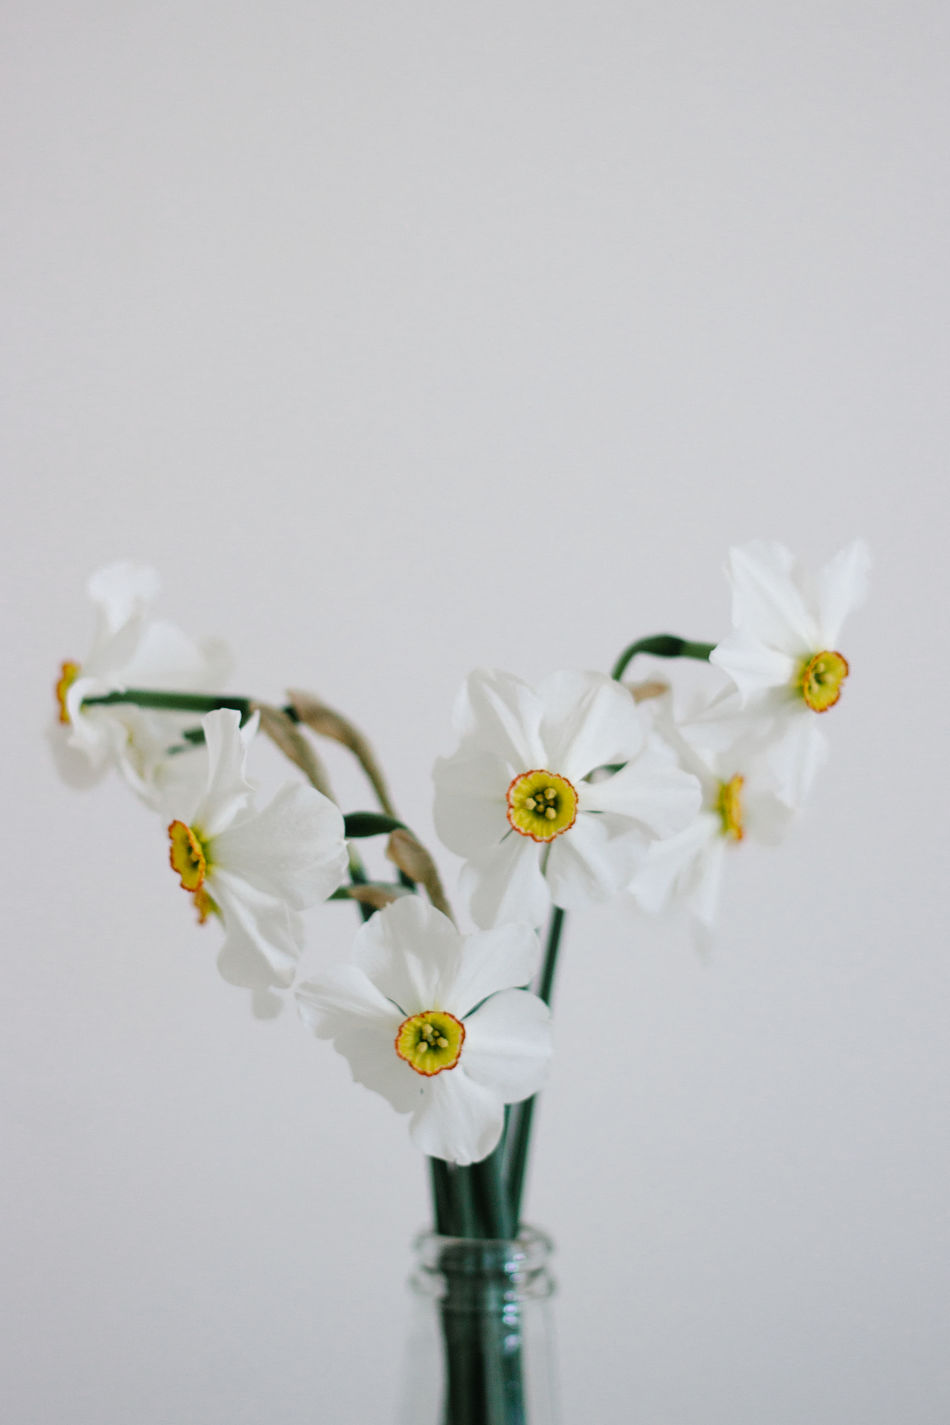 Close up of narcissus flower in glass bottle in minimalistic style Beauty In Nature Close-up Day Flower Flower Head Fragility Freshness Glass Growth Indoors  Minimalistic Sty Narcissus Nature No People People Petal Plant Springtime Still Life White Background White Color